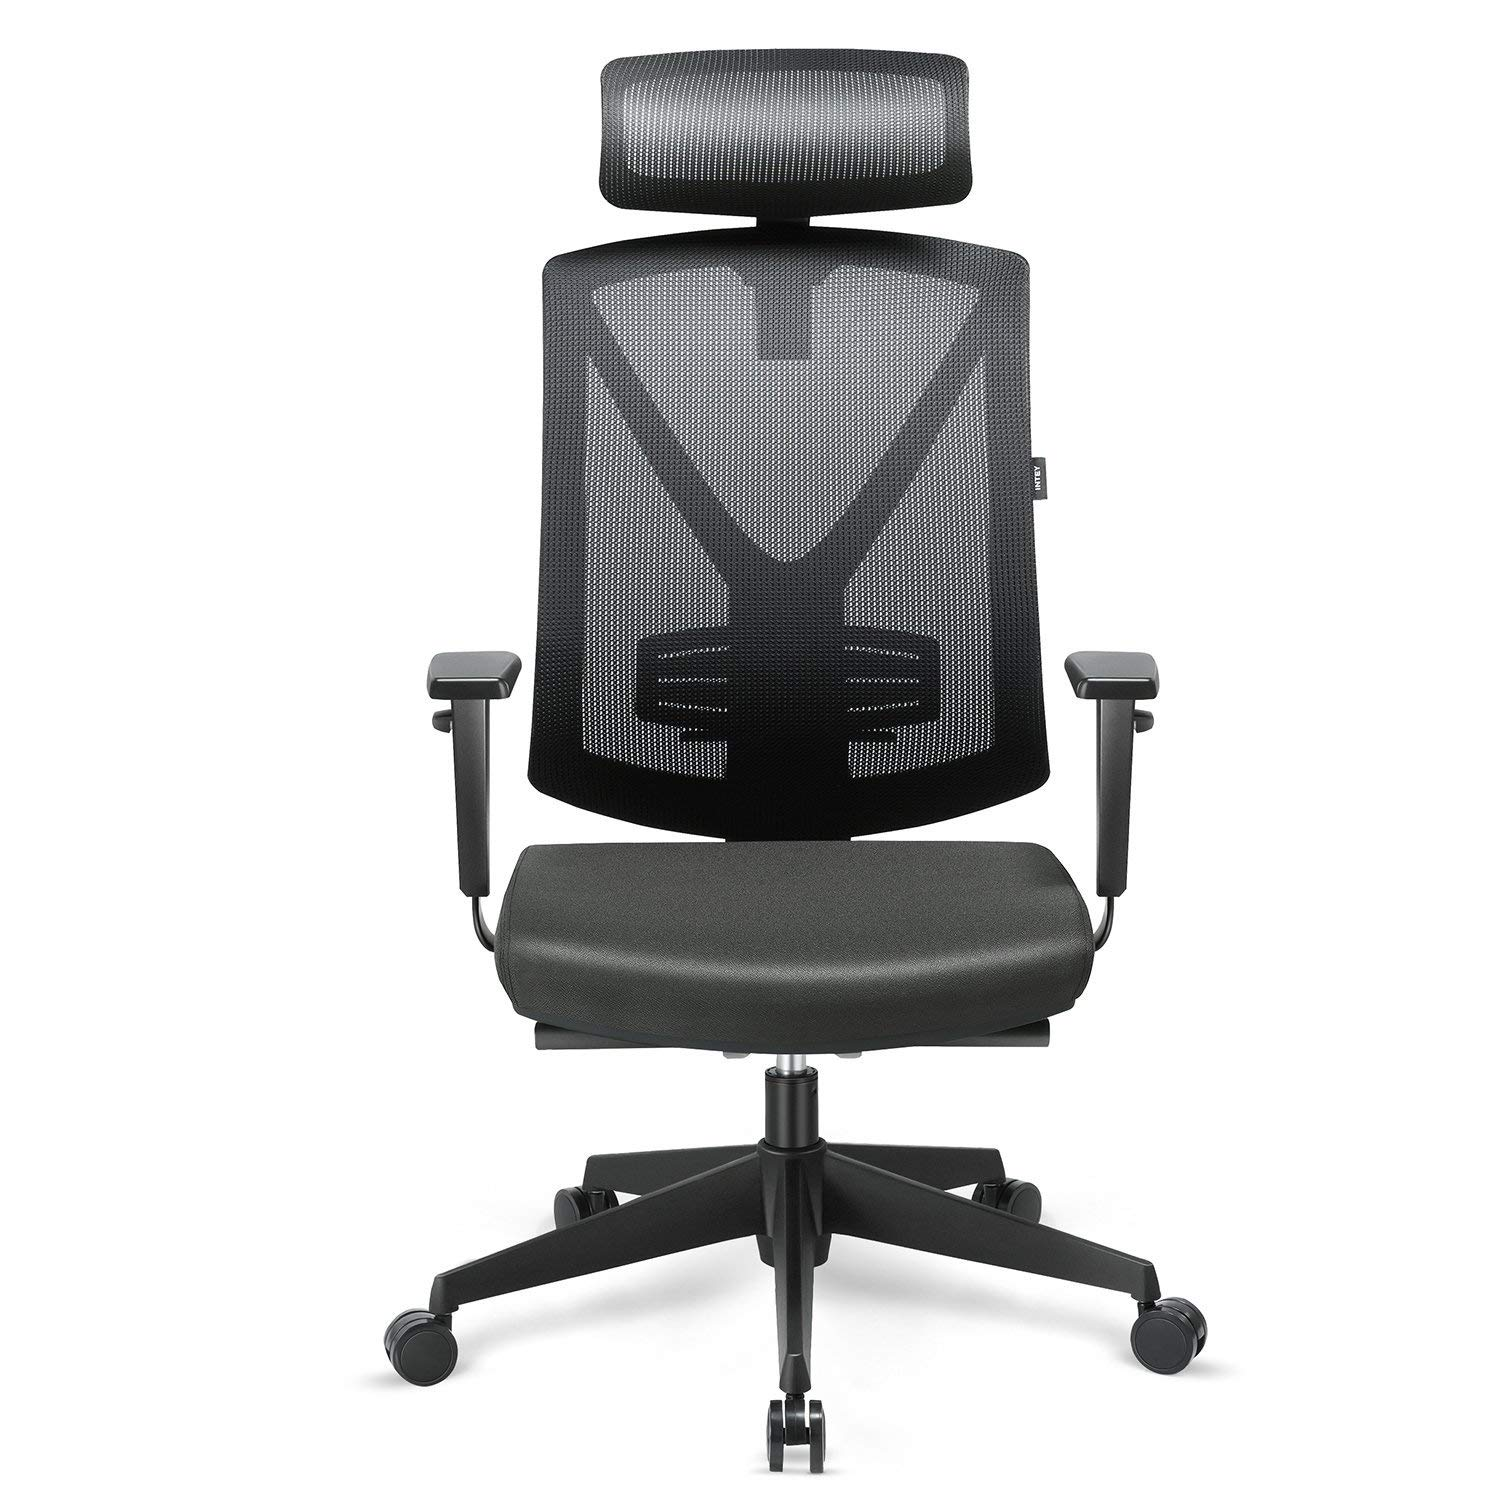 Ergonomic Office Chair INTEY High Back Mesh Desk Chair